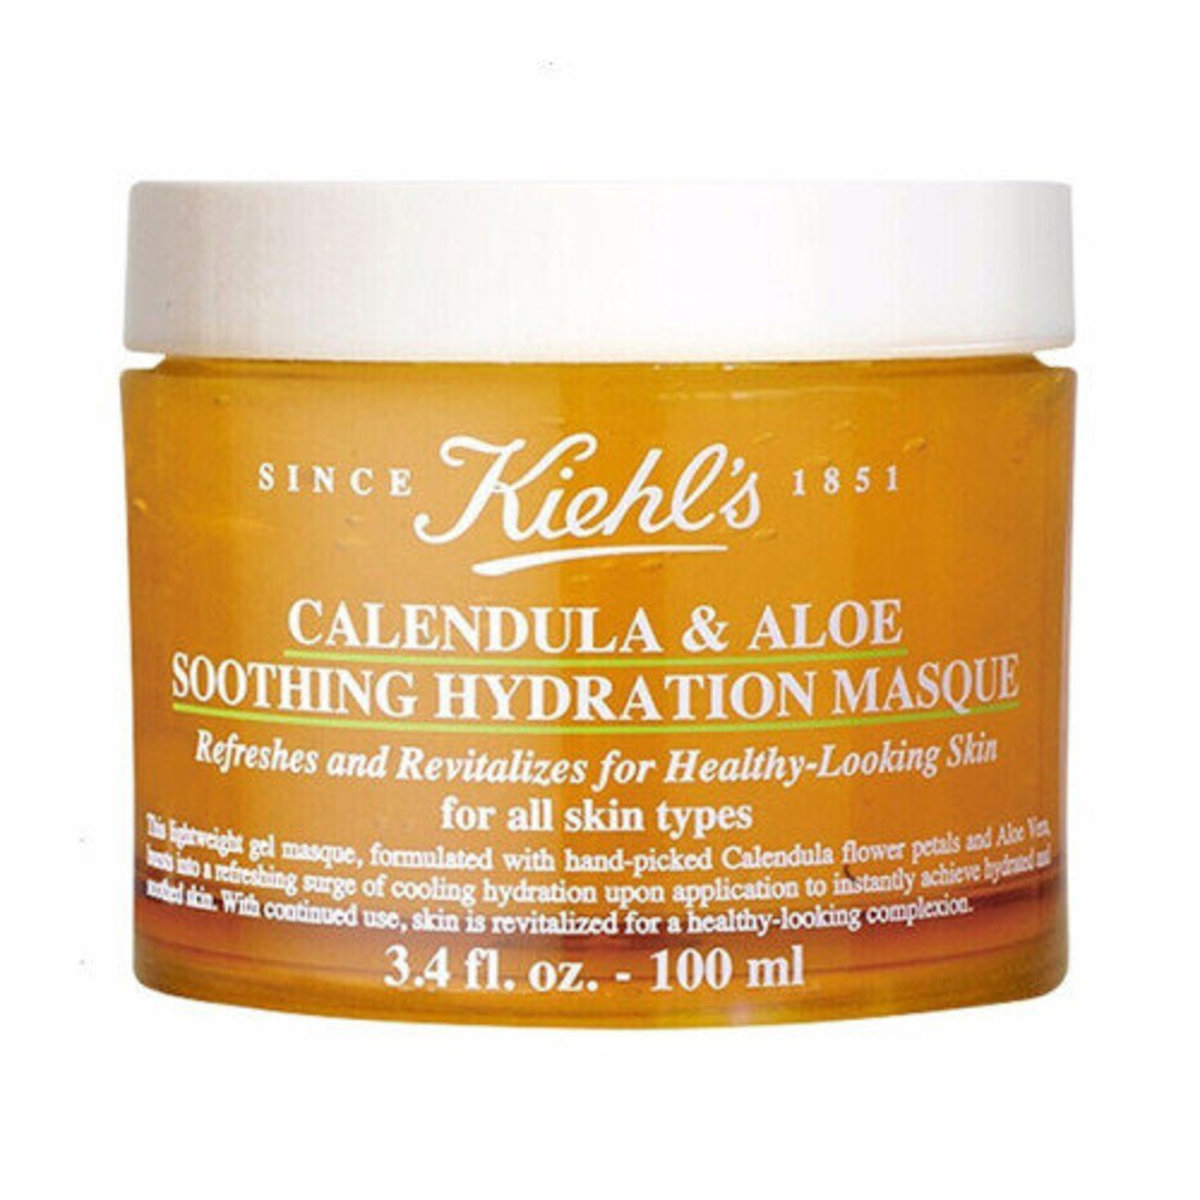 Calendula & Aloe Soothing Hydration Masque (Parallel Import)